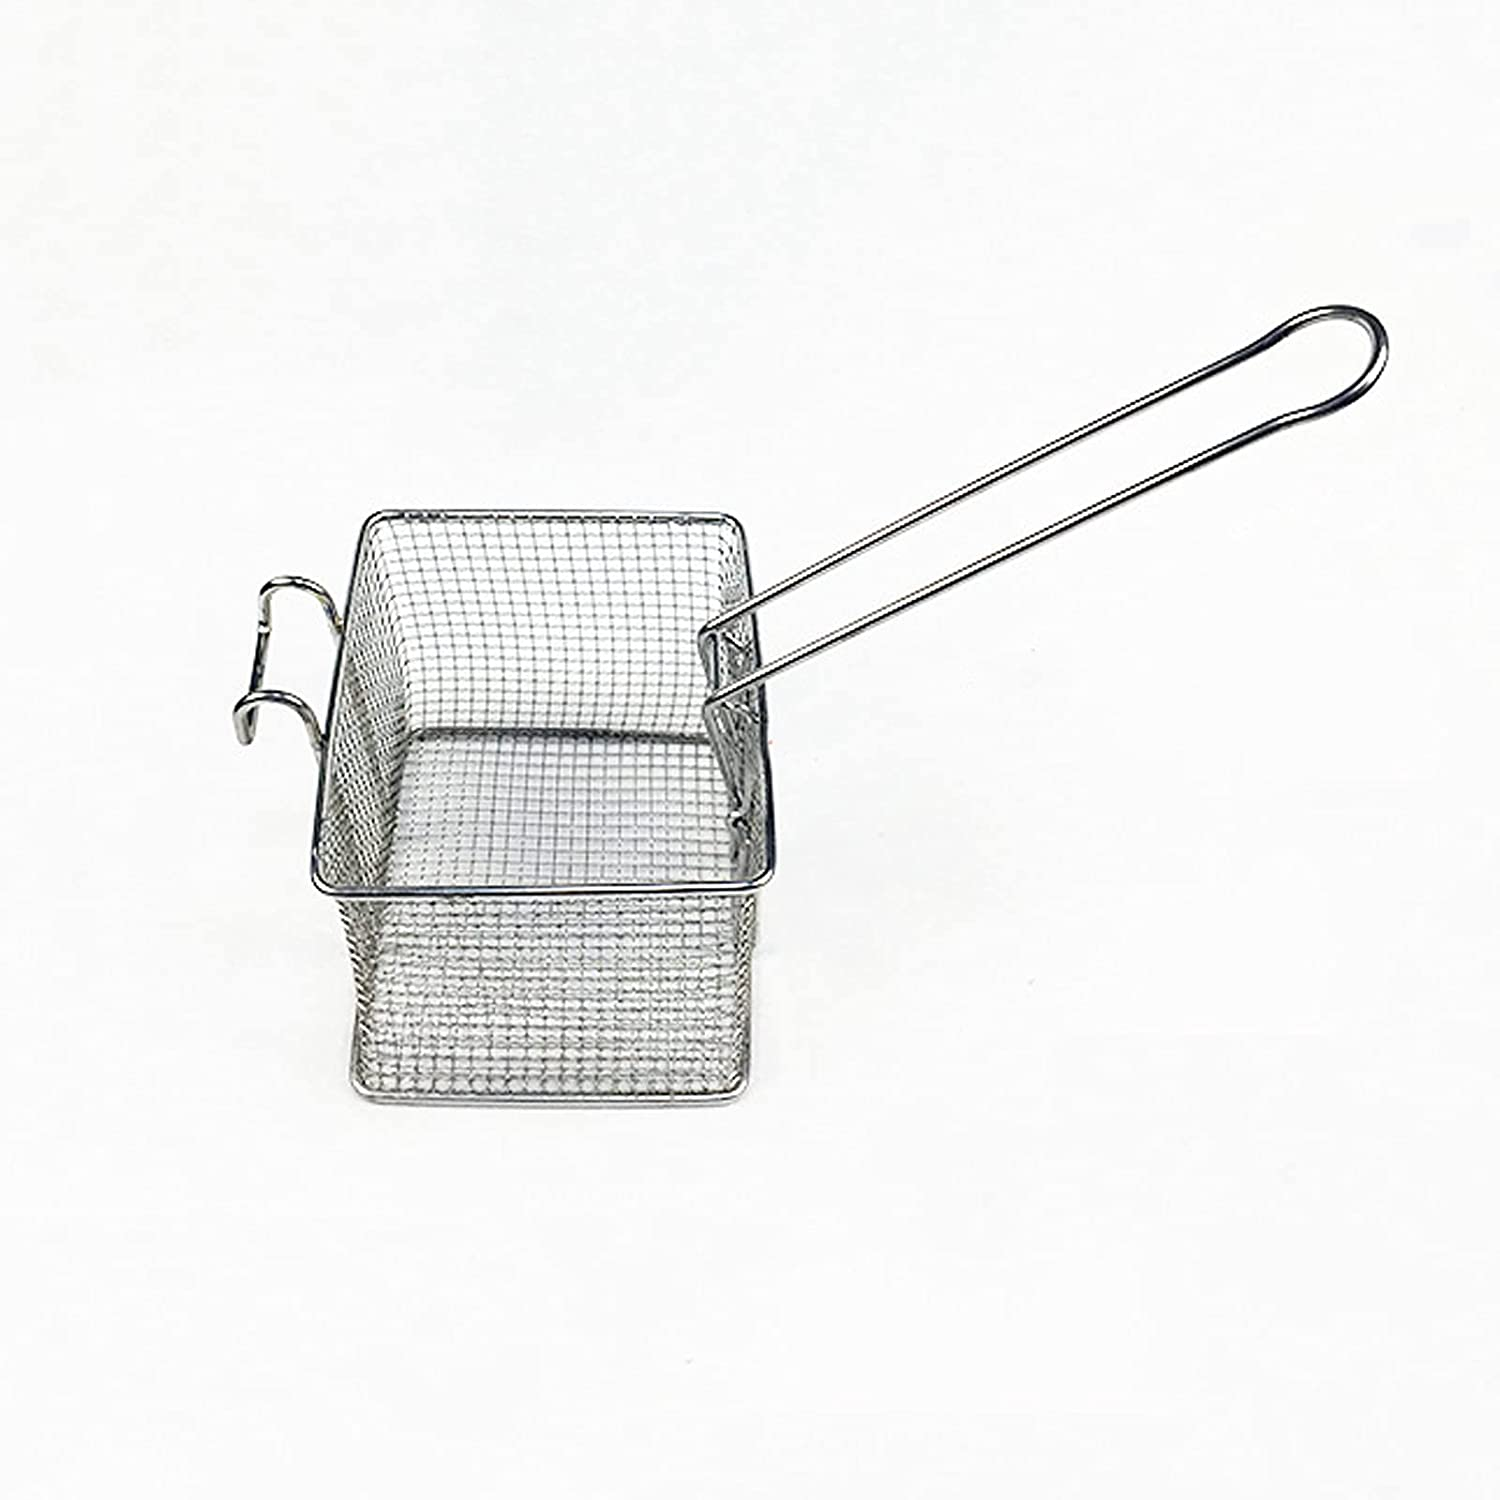 Fryer baskets Commercial Super special price Stainless sale Steel Frying Basket Rectangul